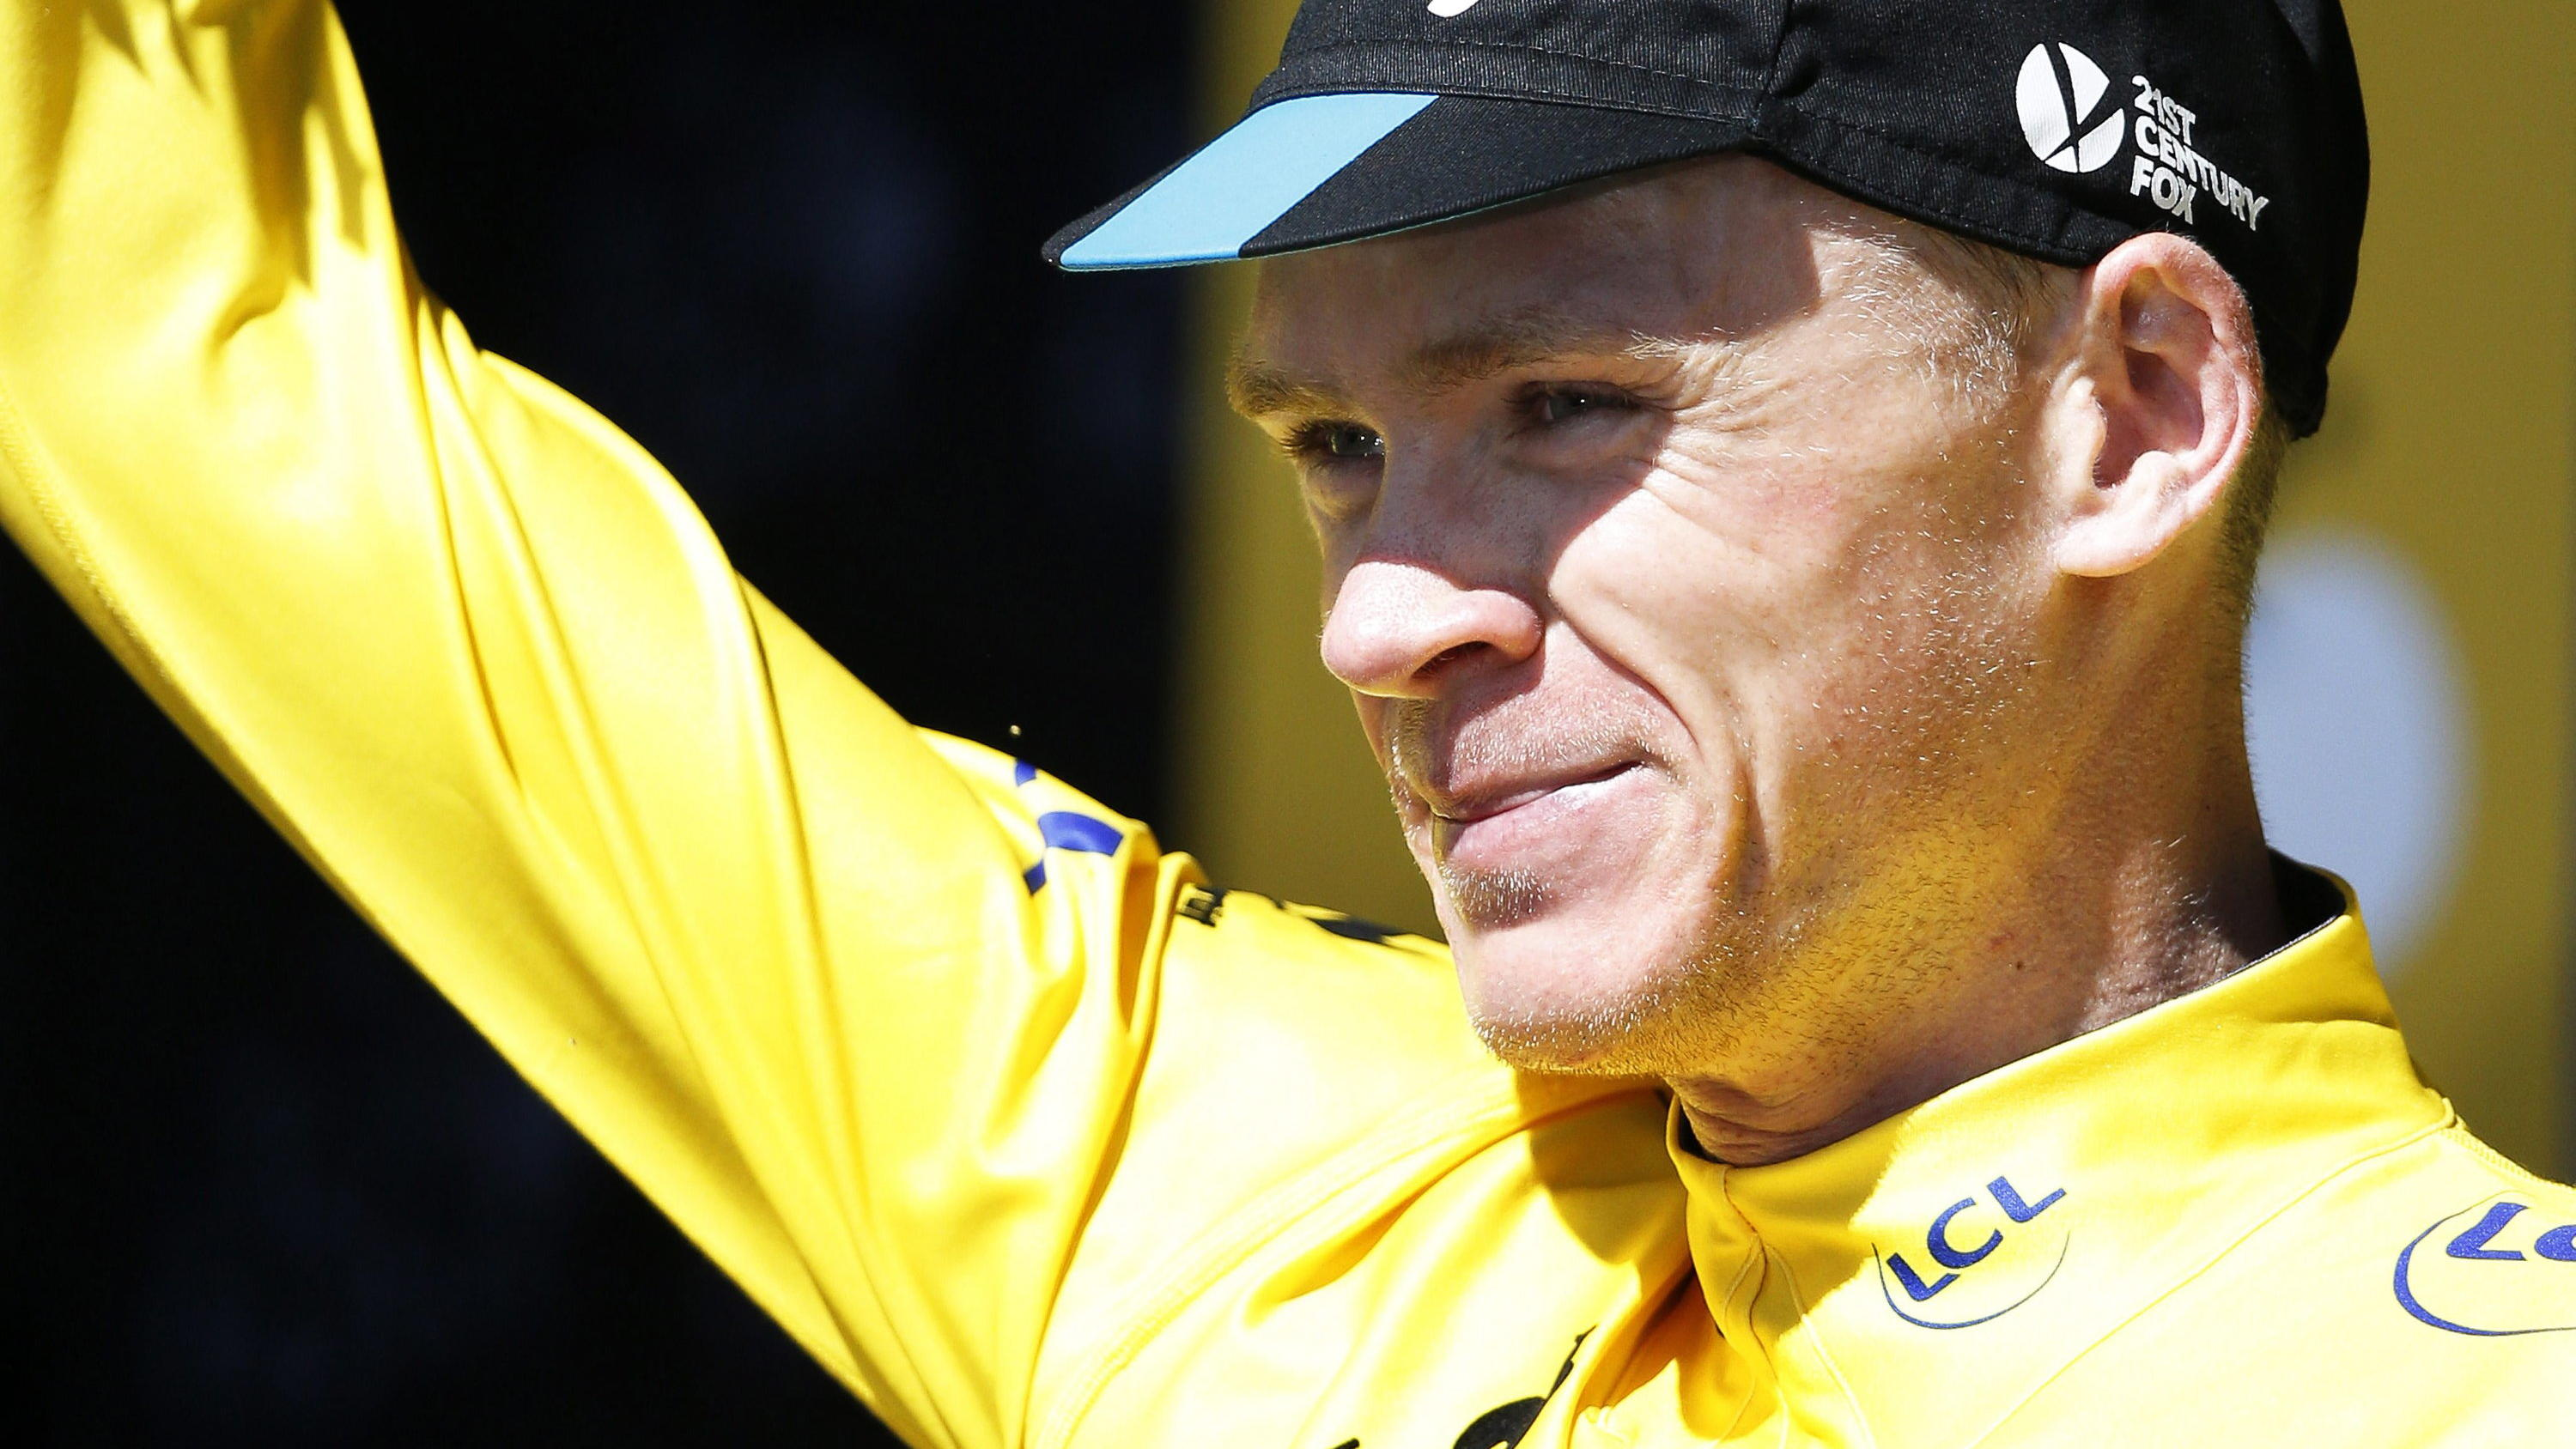 epa04841132 Team Sky rider Christopher Froome of Britain reacts on the podium wearing the overall leader's yellow jersey following the 7th stage of the 102nd edition of the Tour de France 2015 cycling race over 190.5km between Livarot and Fougeres, F